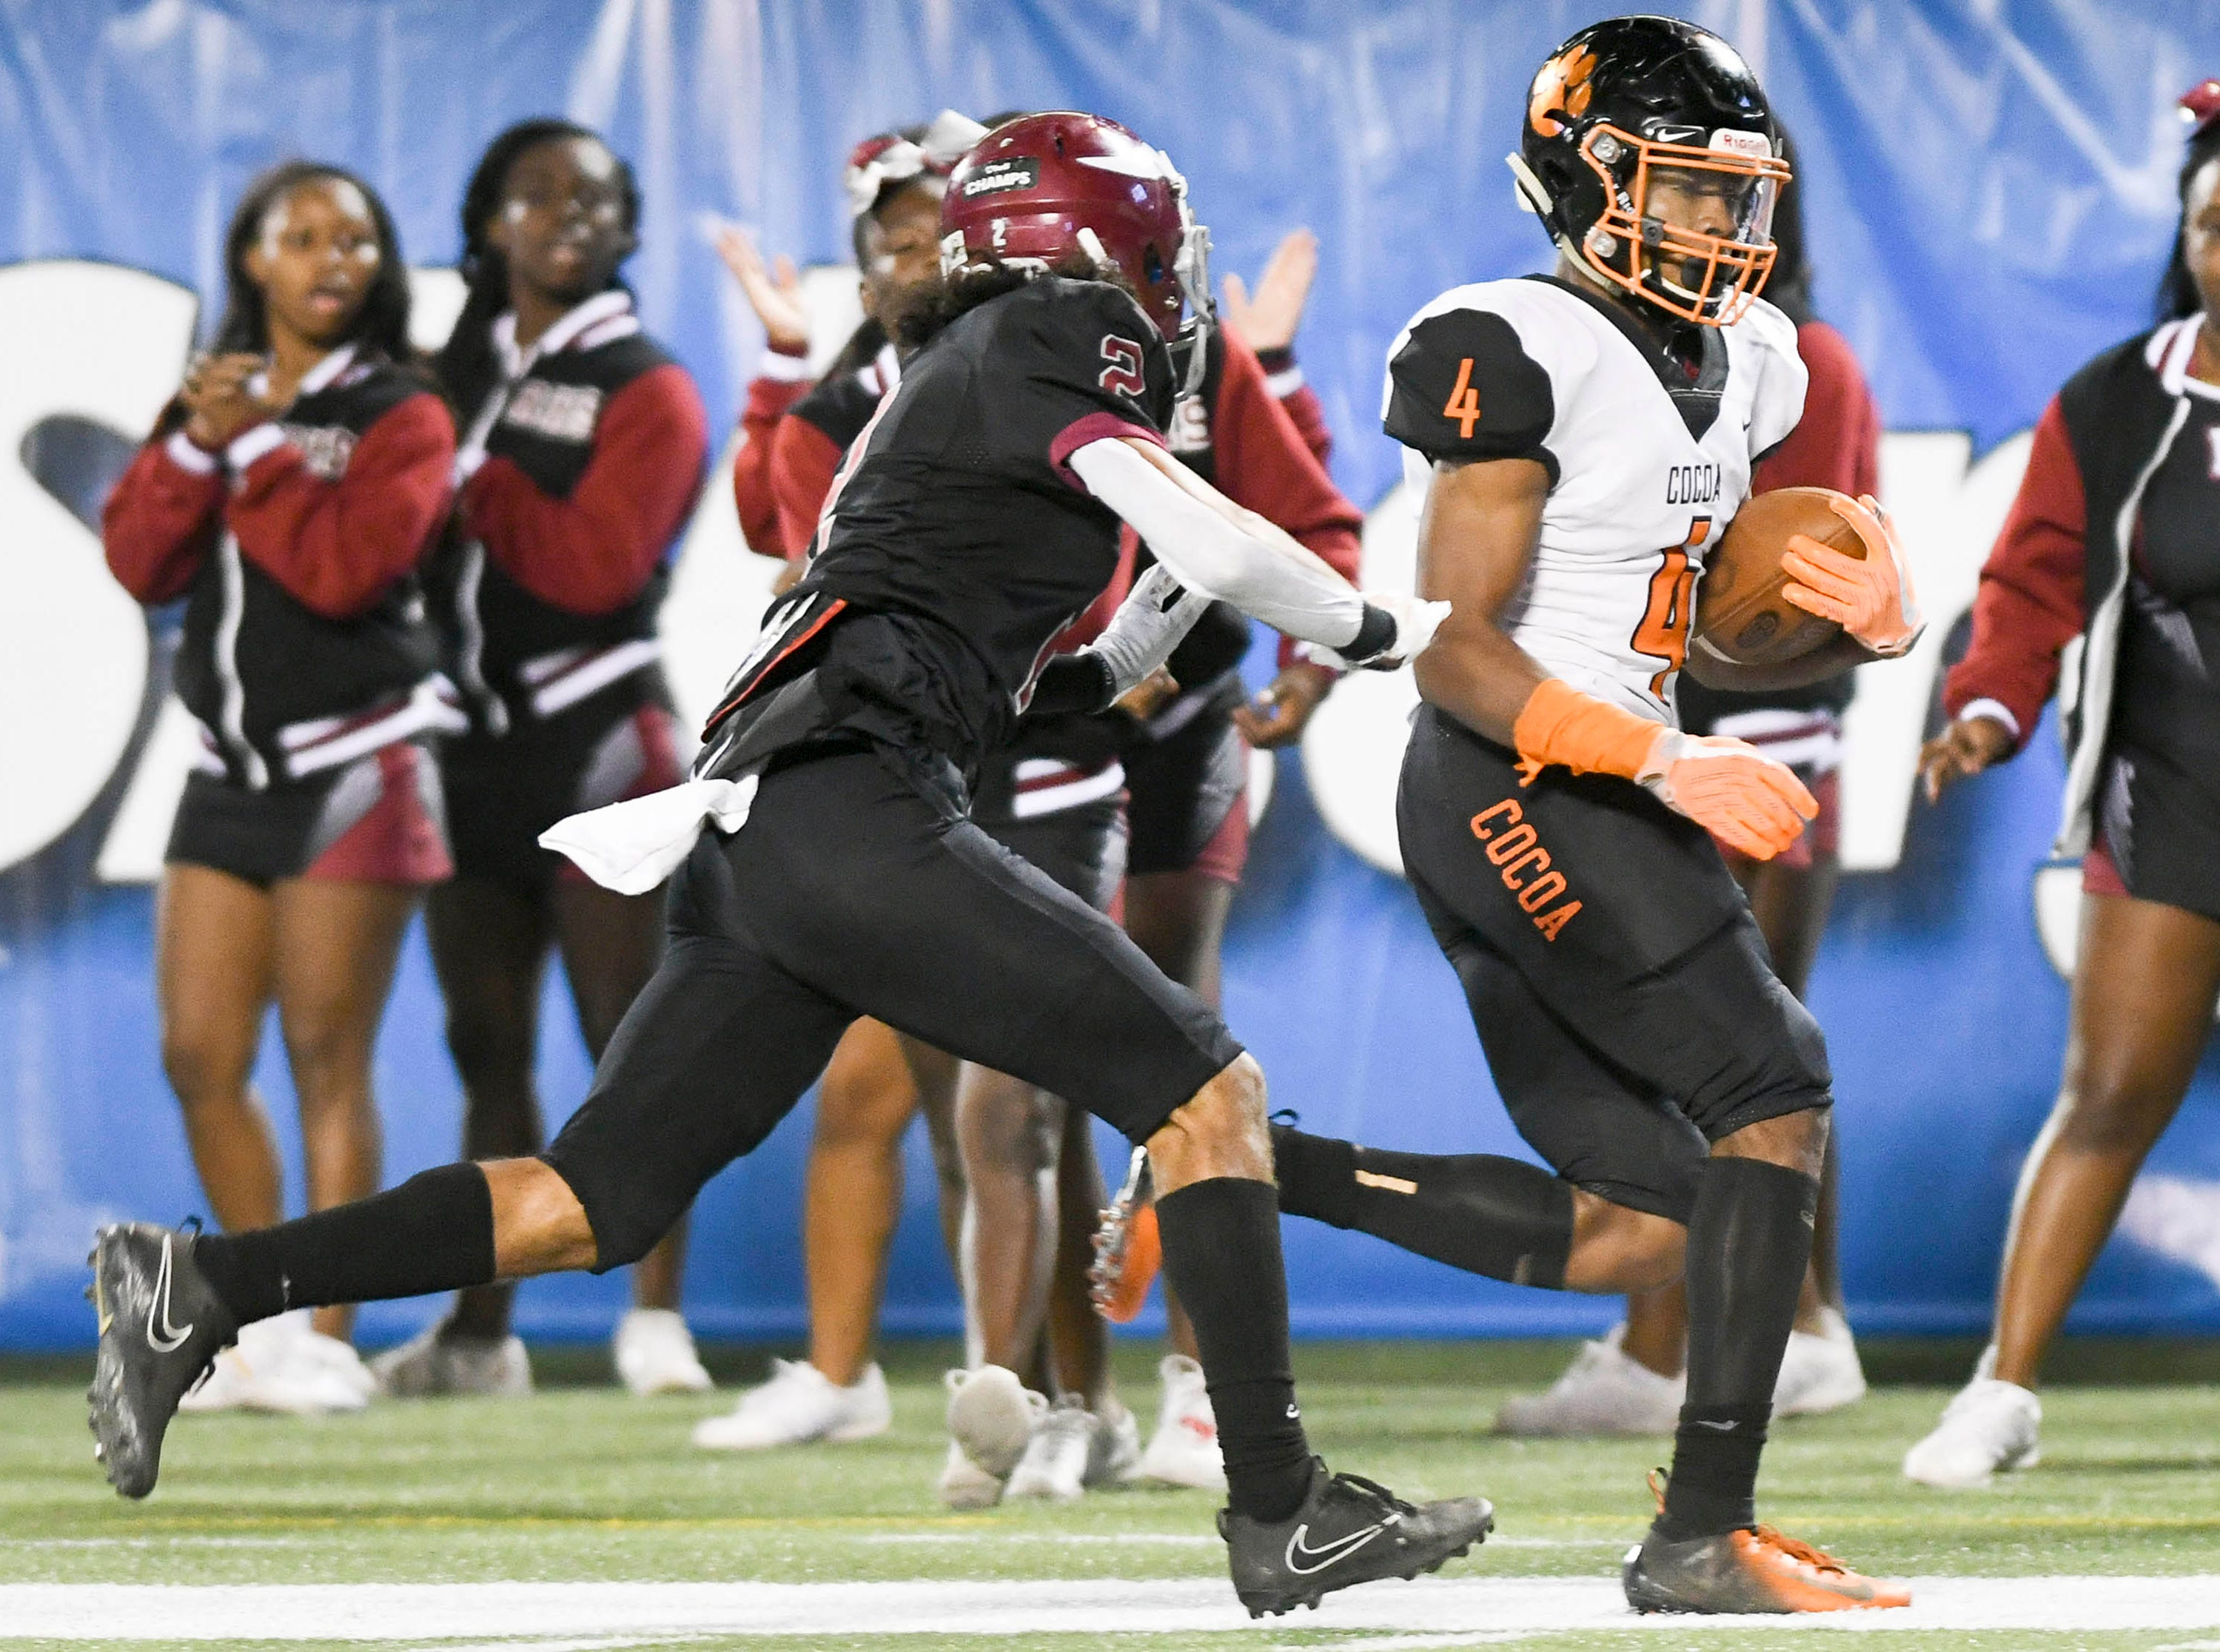 Willie Gaines of Cocoa is pushed out of bounds short of the goal line by Raines defender Treyvon Hobbs during Thursday's Class 4A football state championship.